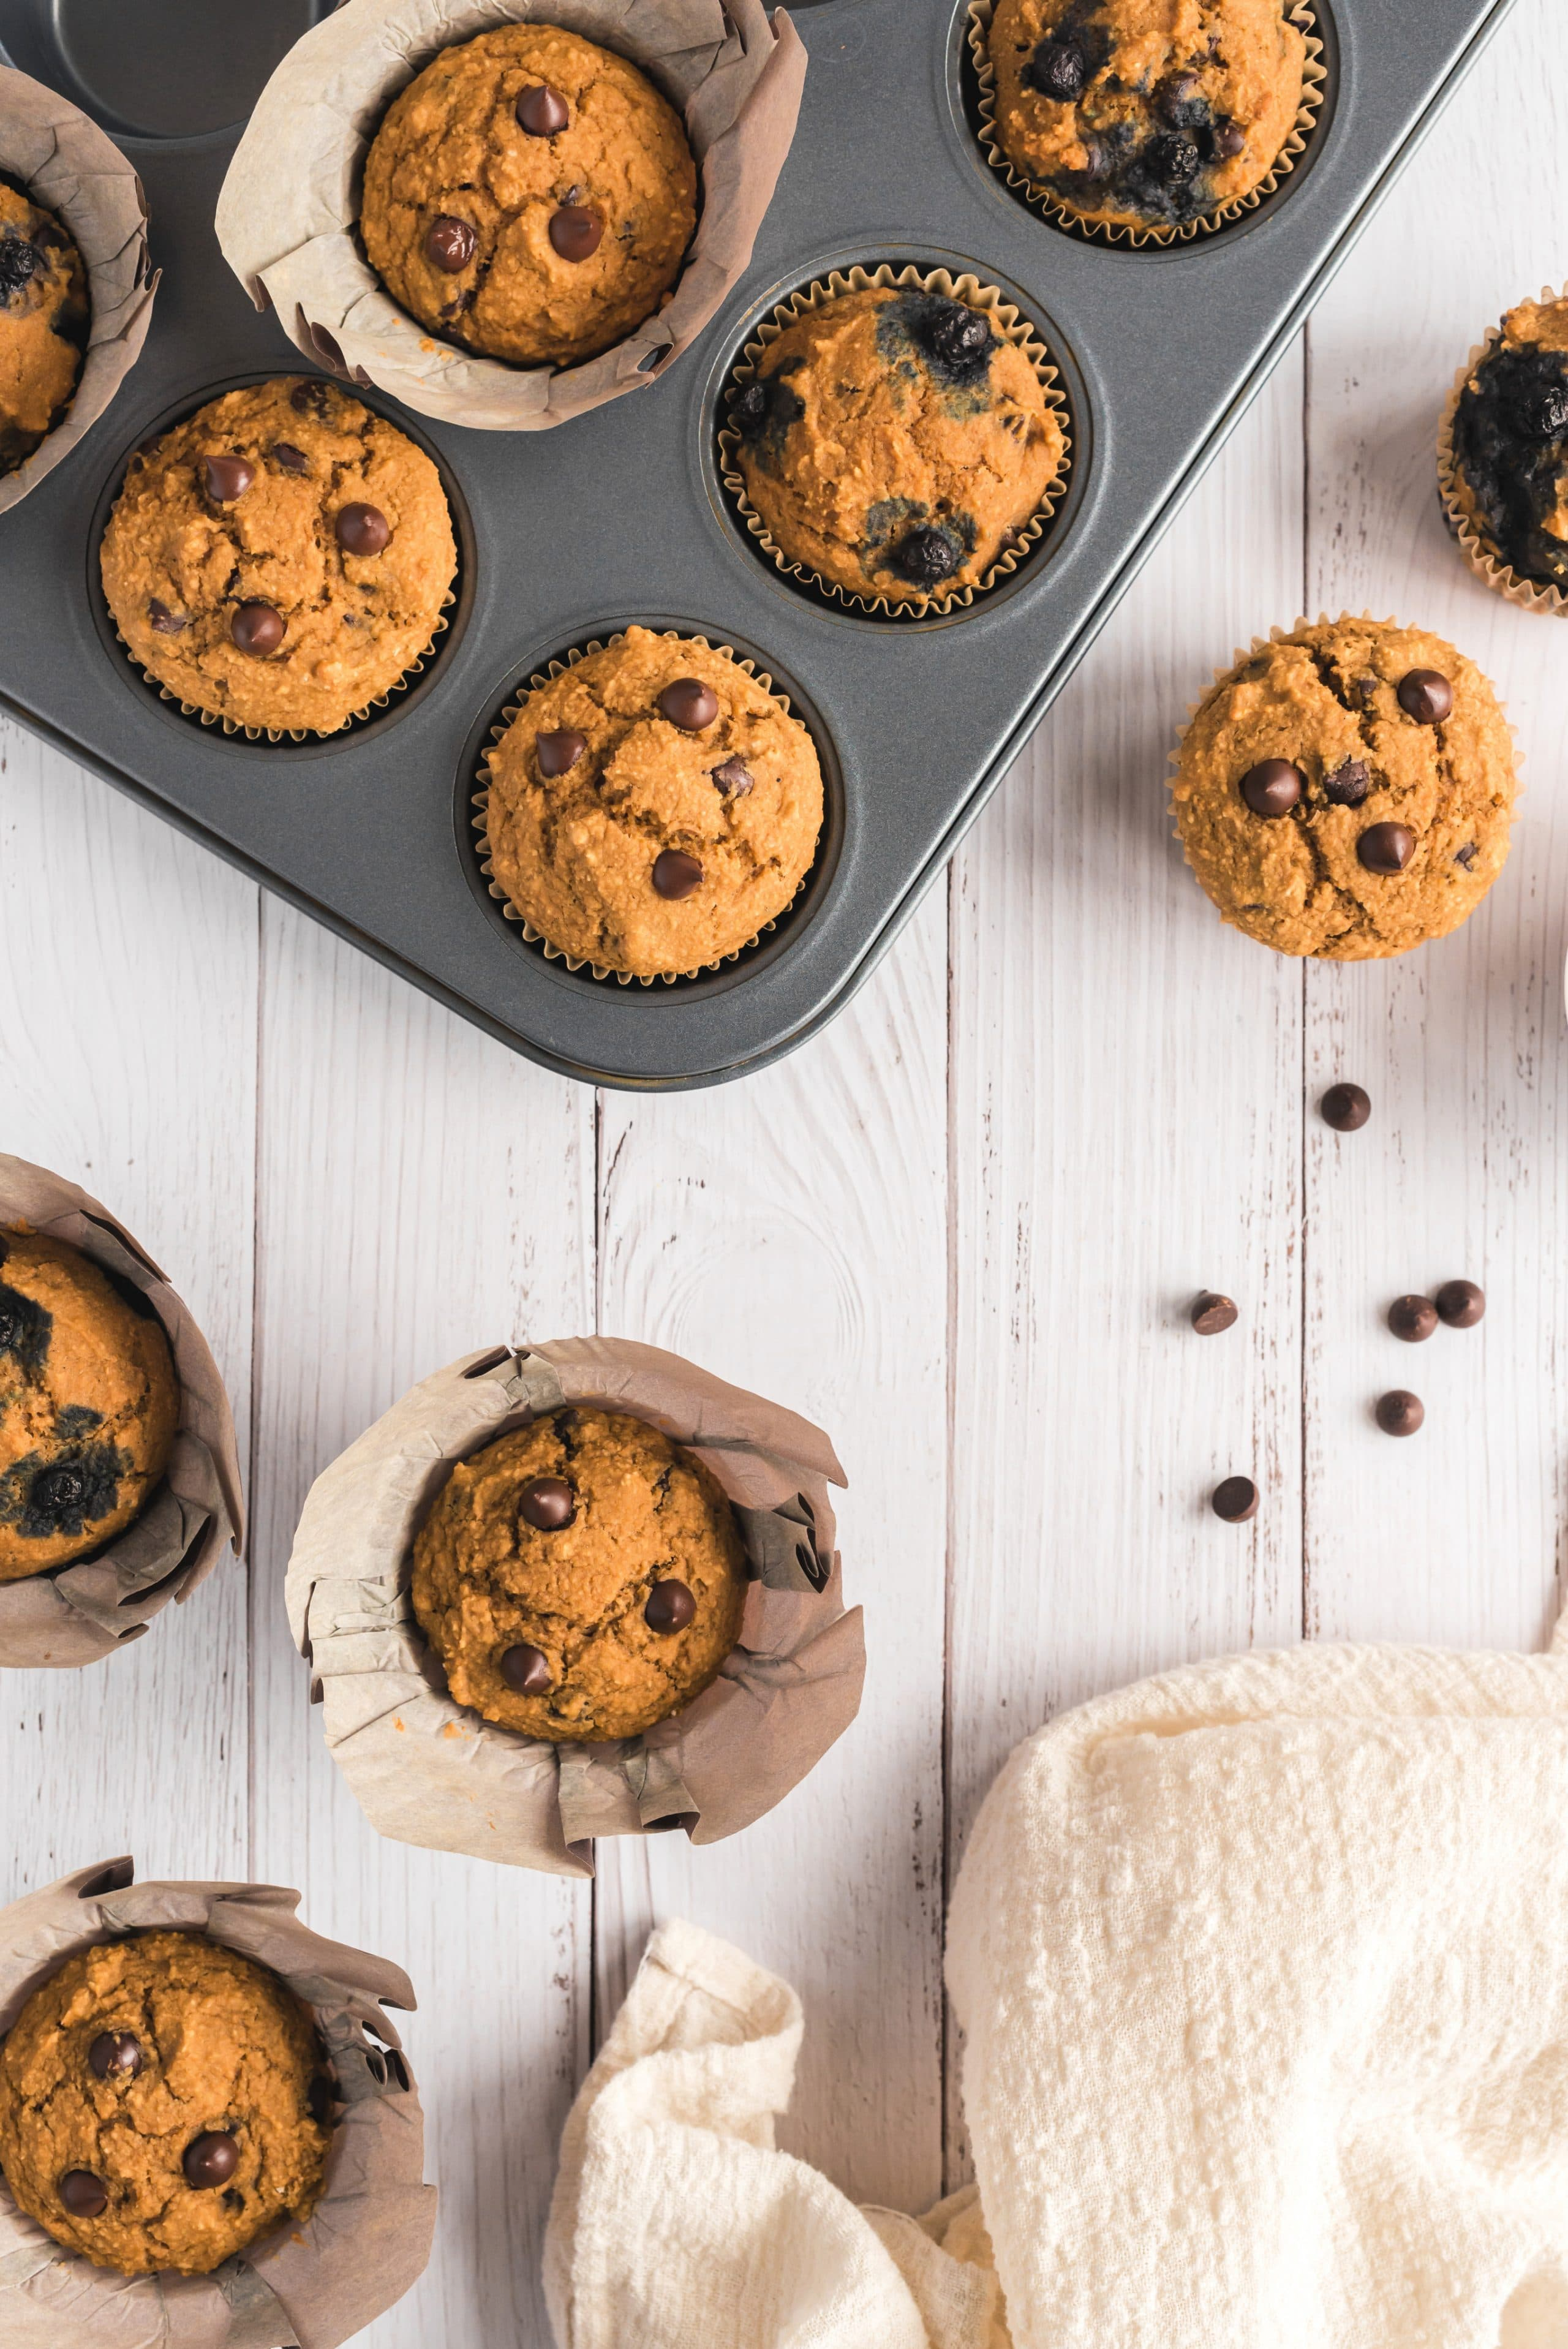 muffins in pan and on table